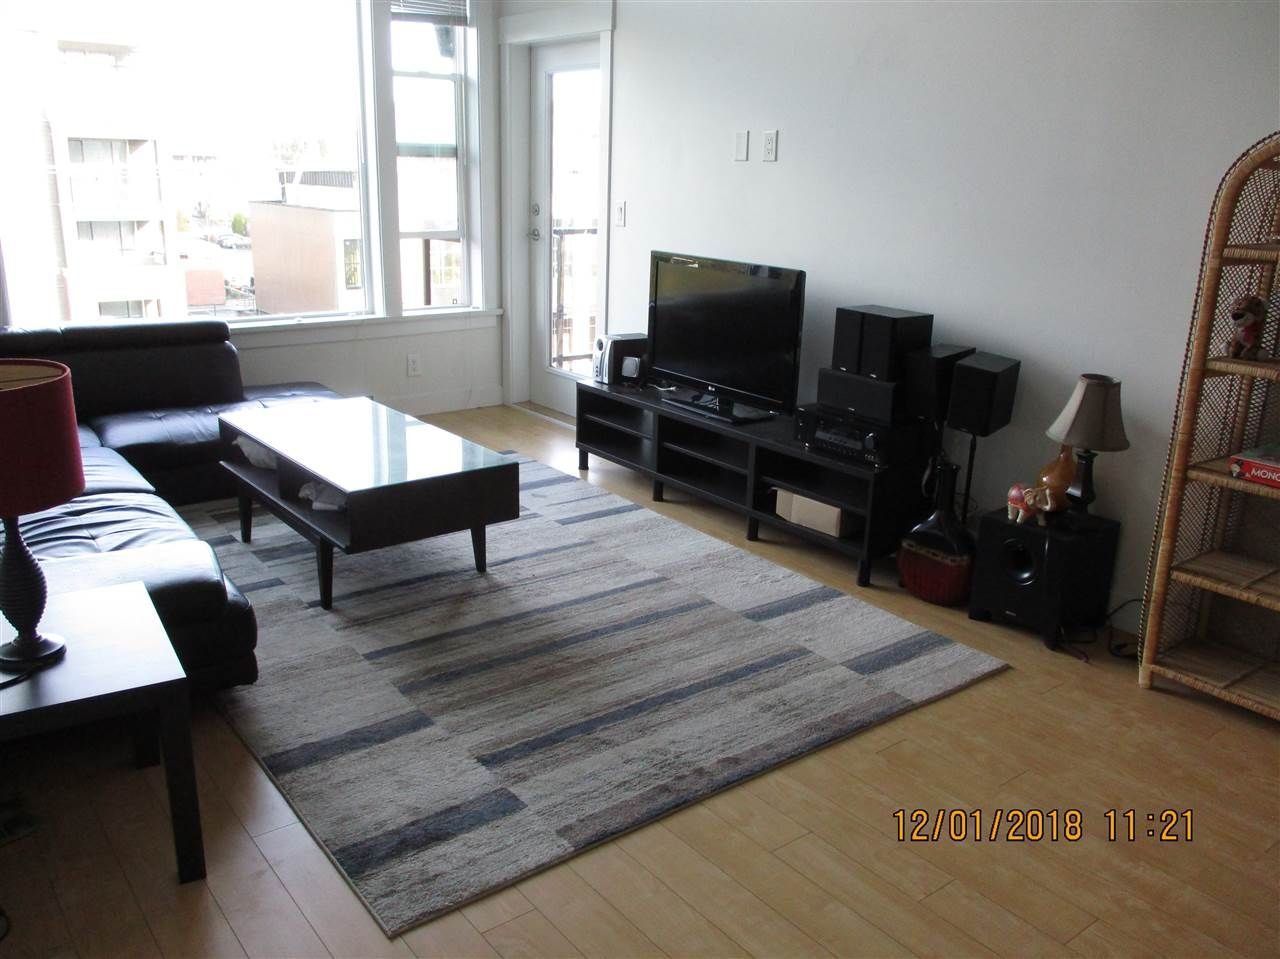 """Photo 8: Photos: 409 33538 MARSHALL Road in Abbotsford: Central Abbotsford Condo for sale in """"THE CROSSING"""" : MLS®# R2326134"""